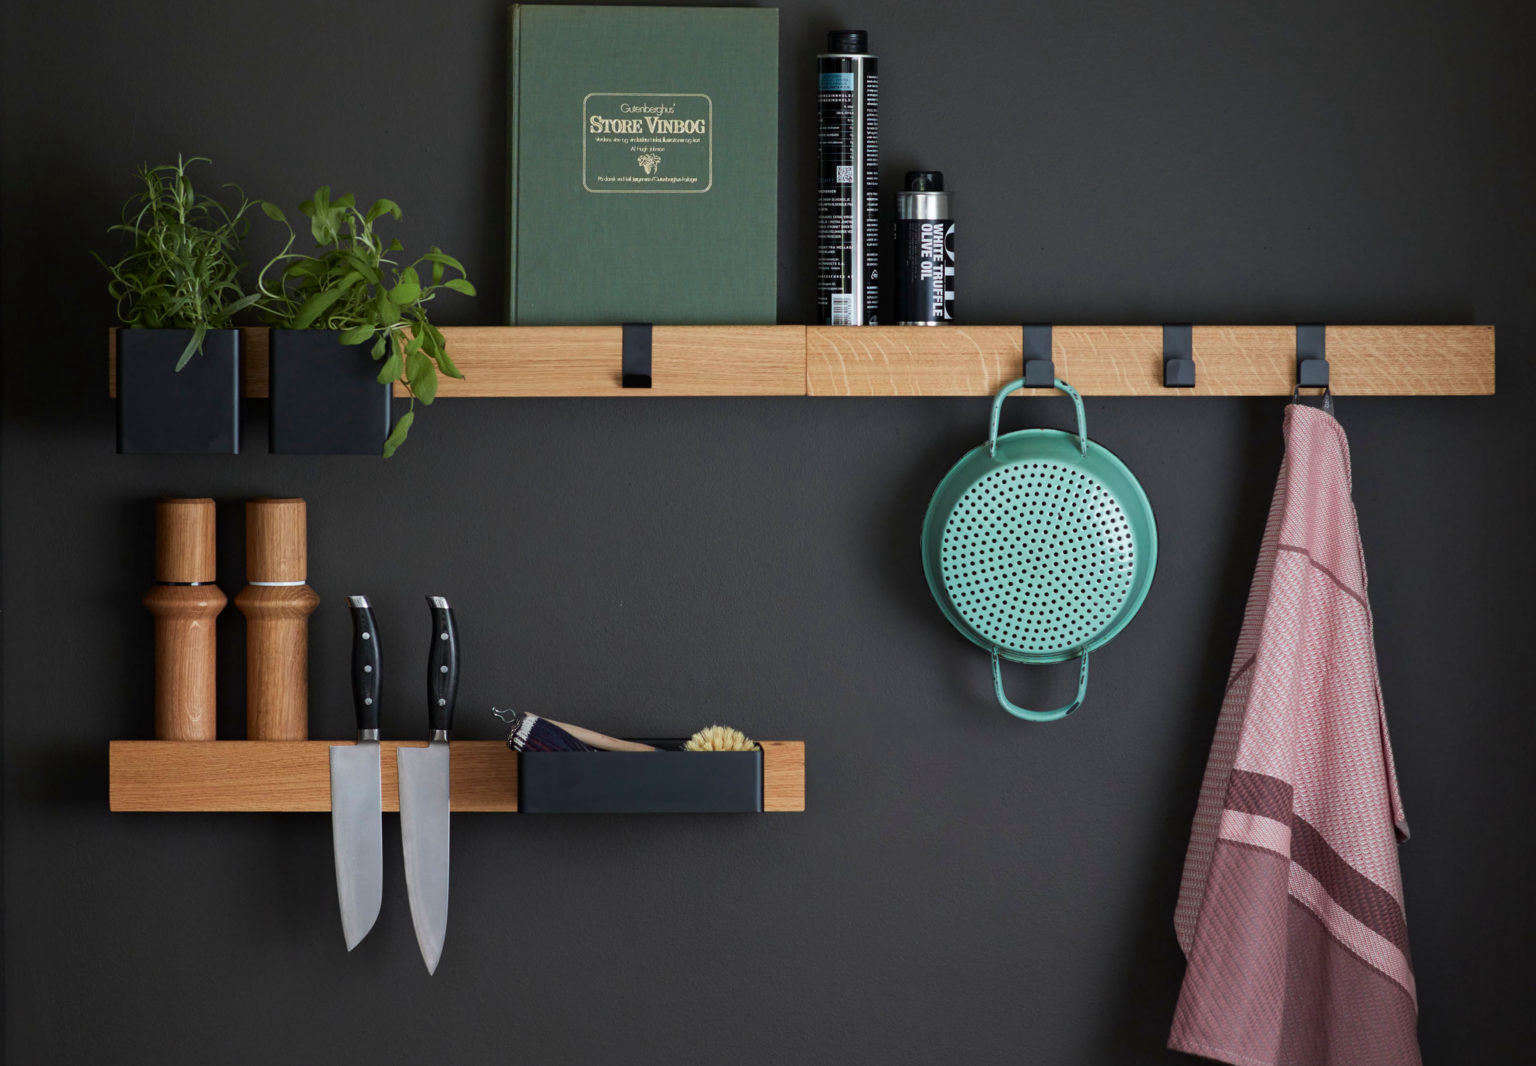 Open shelving: The Gejst Flex ledge storage system in a kitchen.